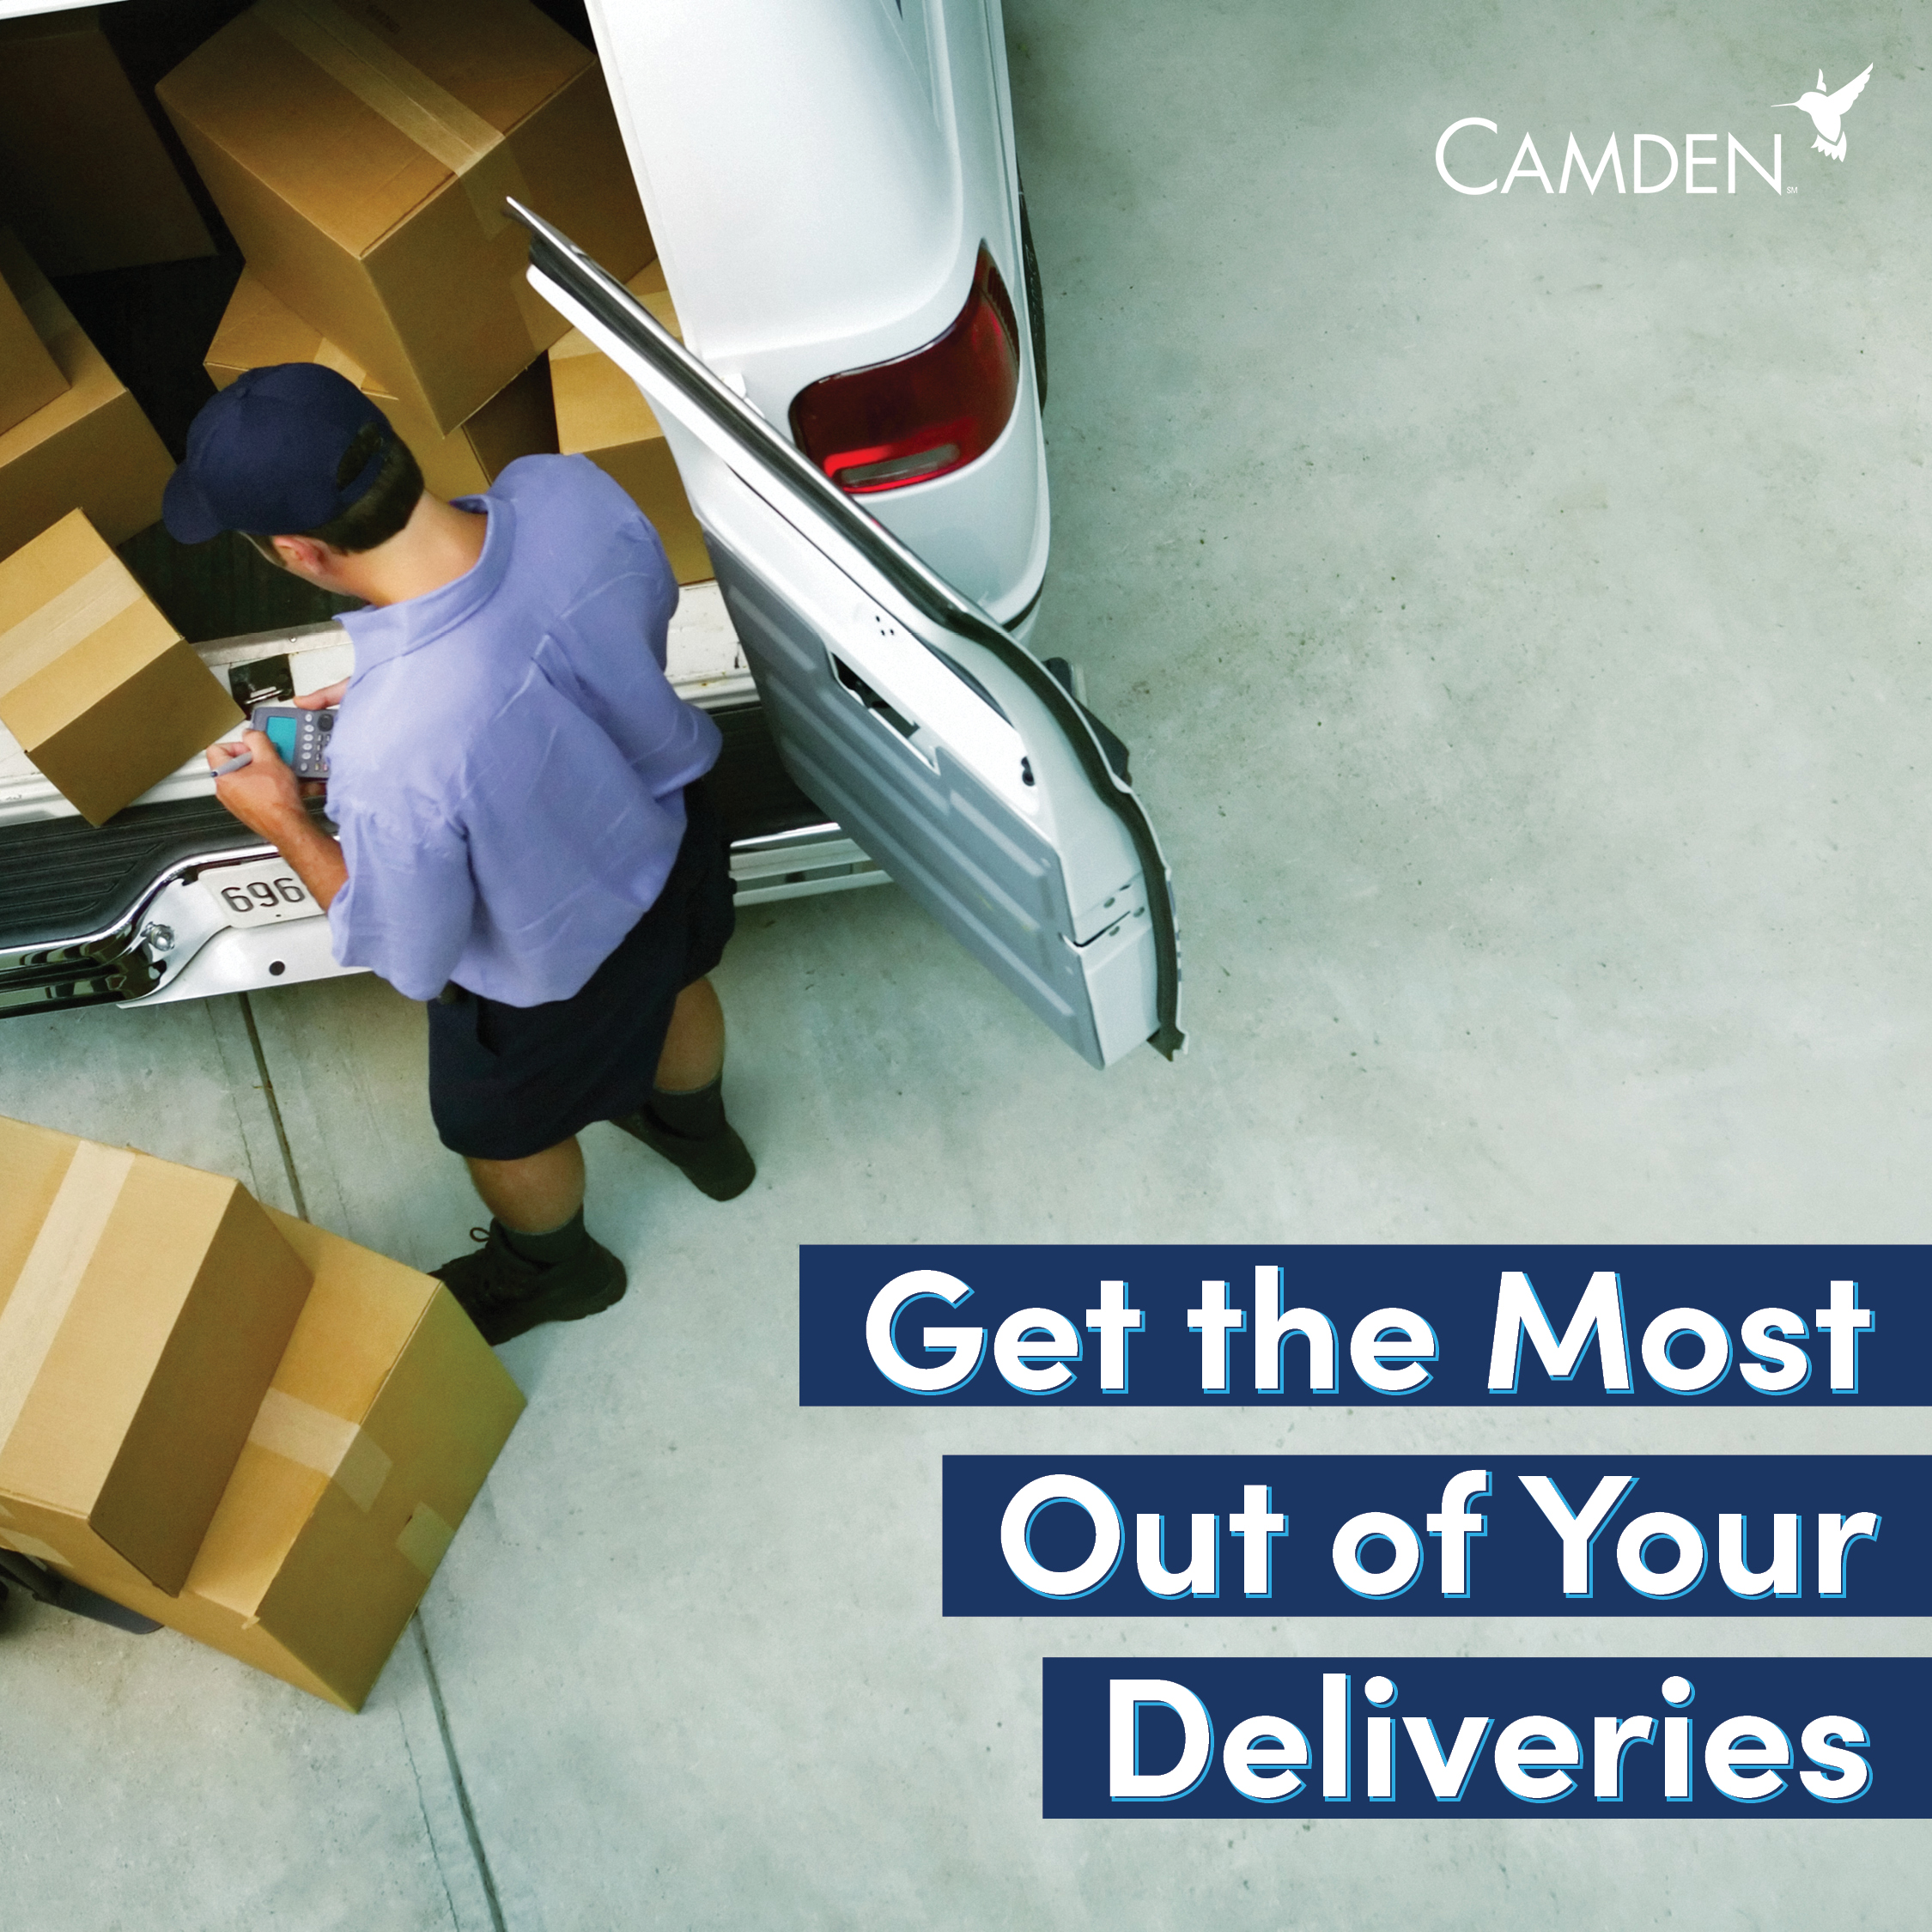 Get the most out of your package deliveries - Read about how on Simply Camden